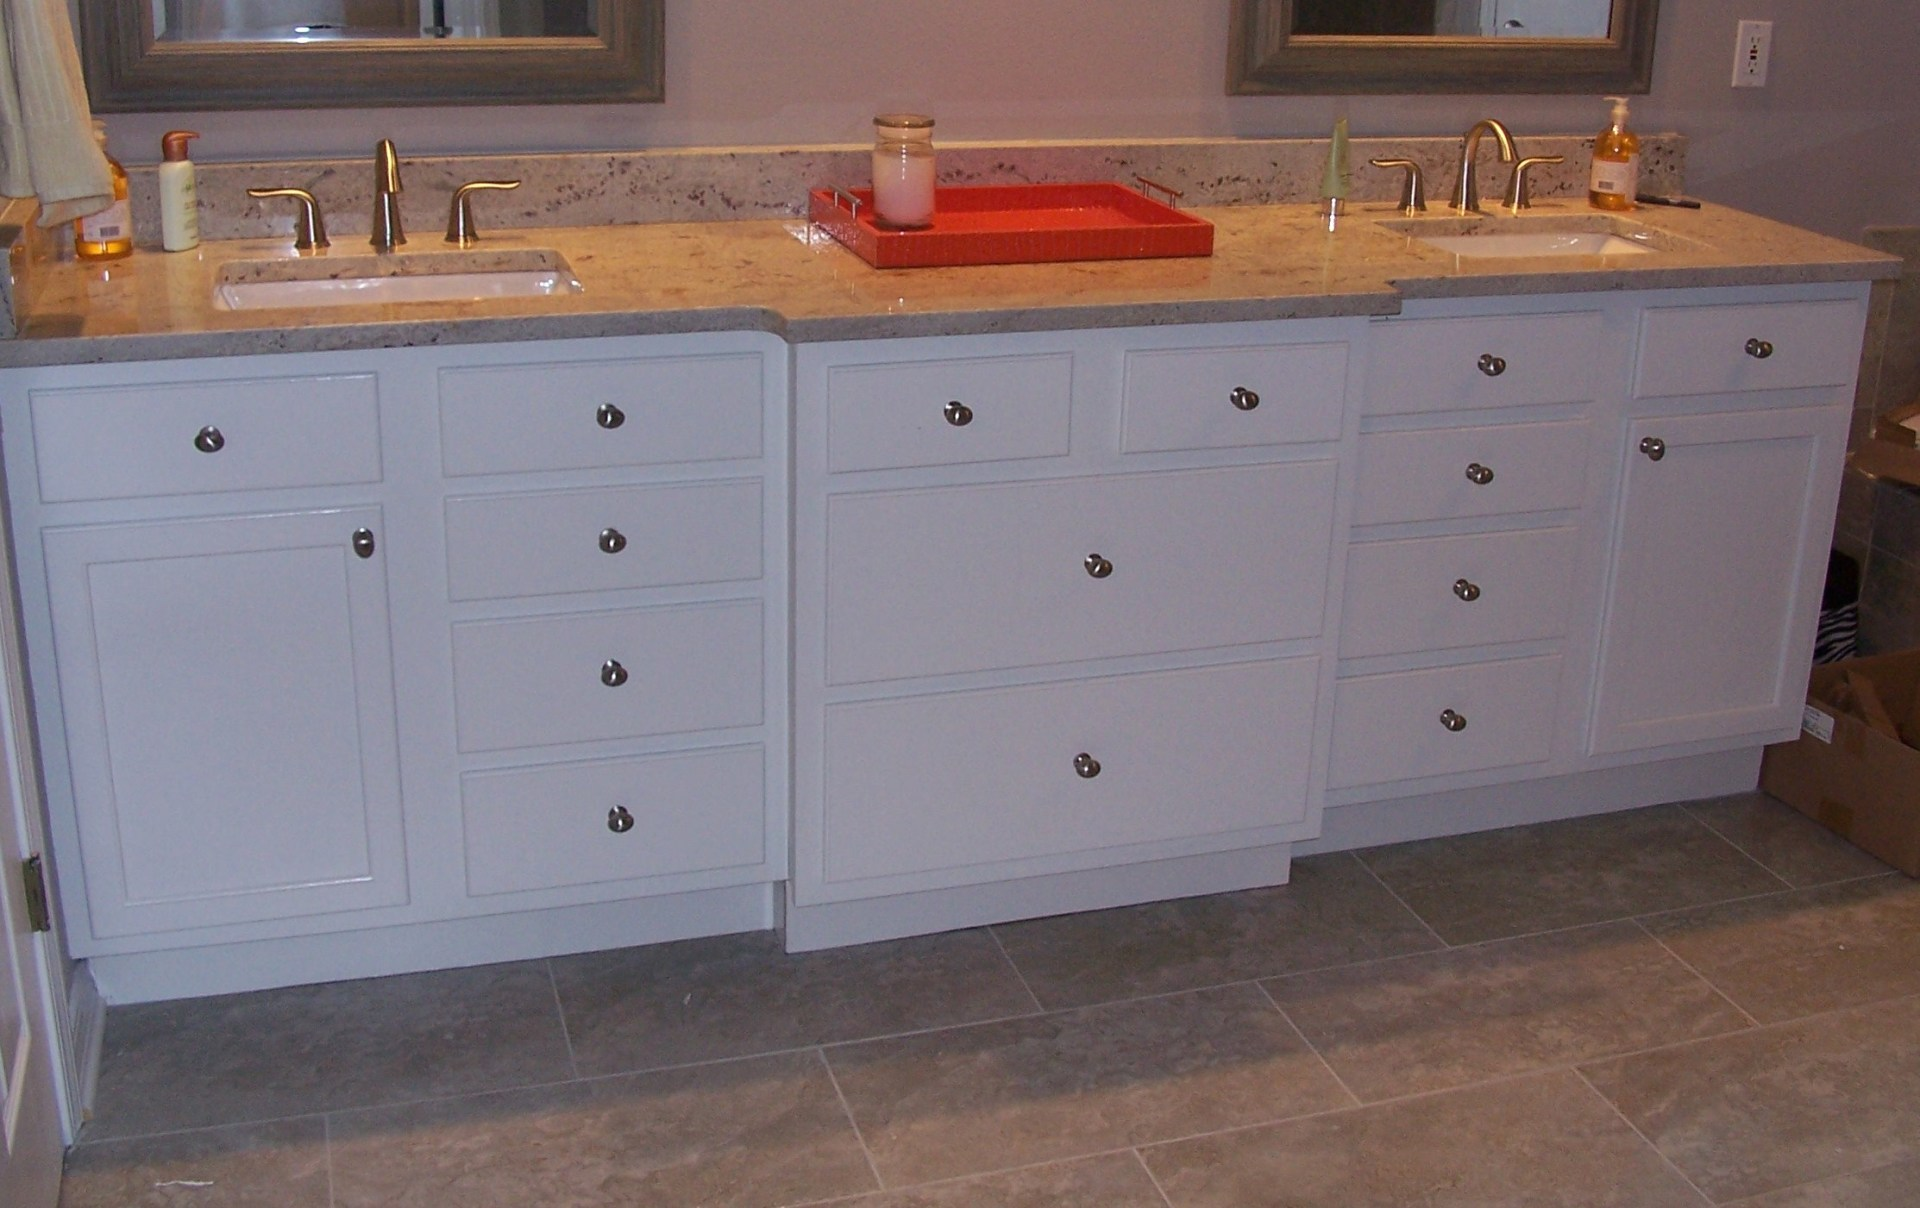 Higher Vanity tops in Bathrooms